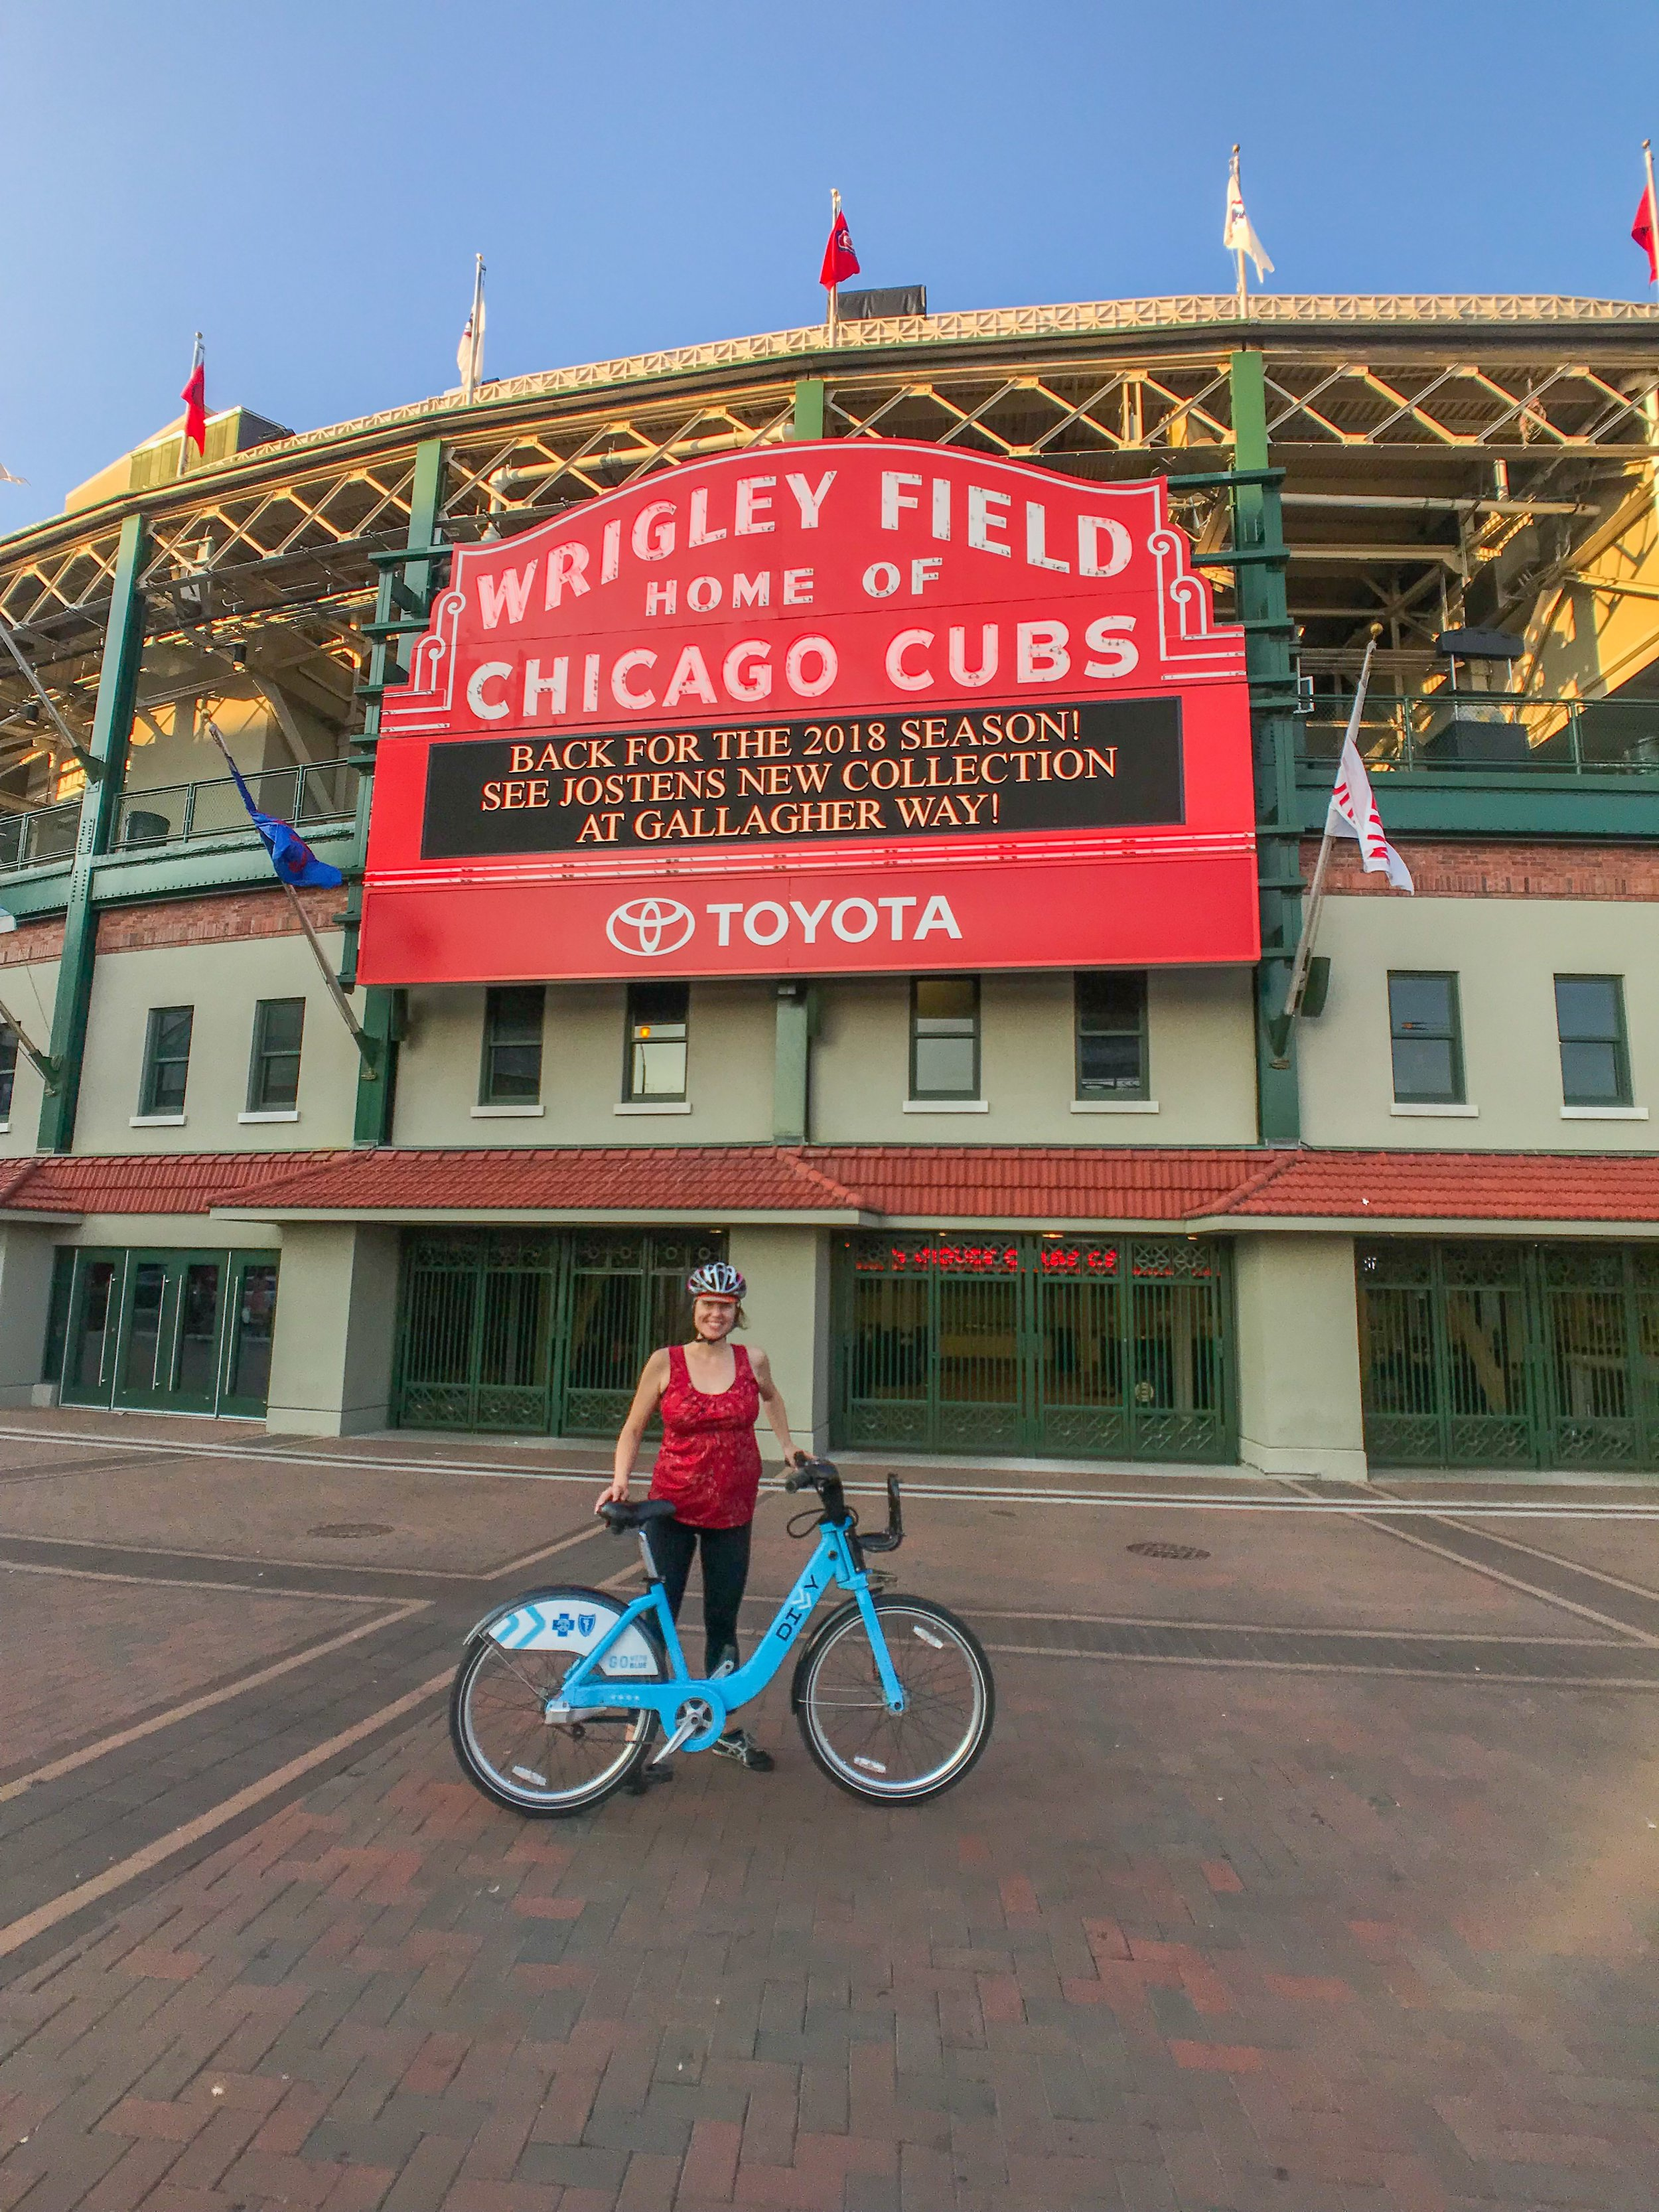 Bike share is a great way to explore a city on the cheap!